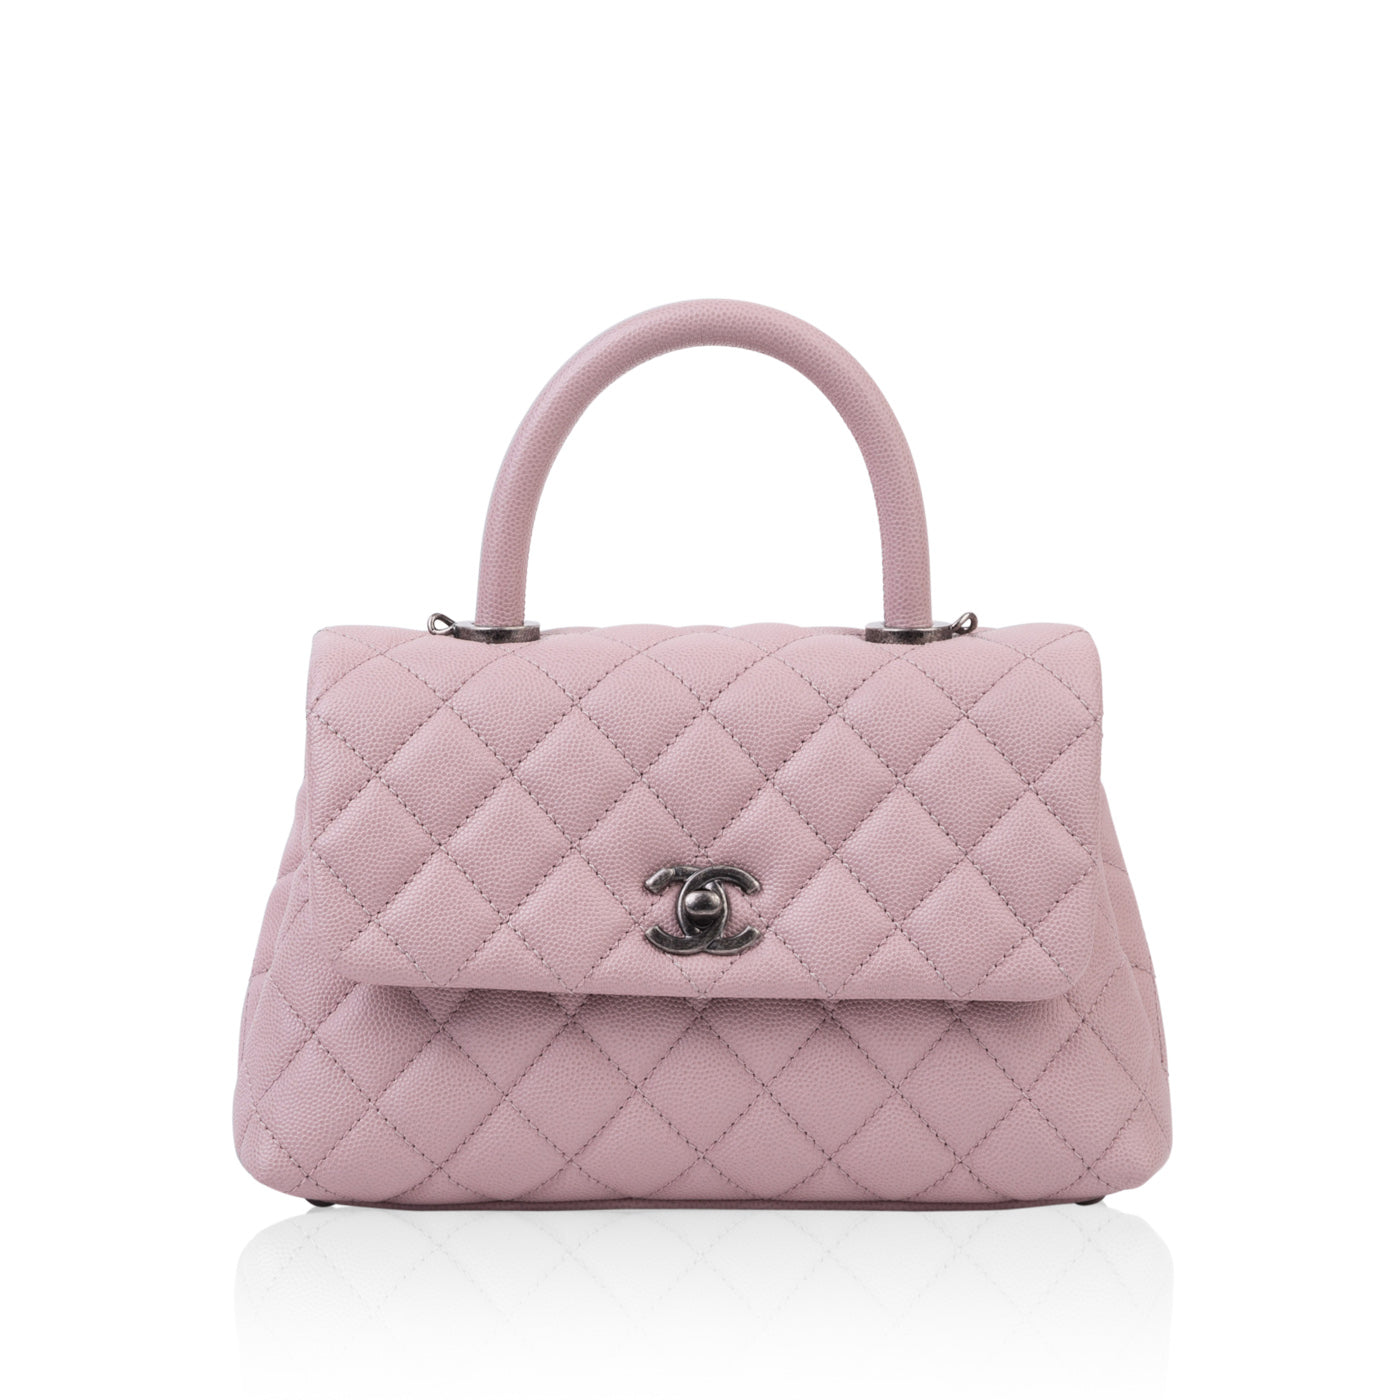 59956bdfcf21b5 Chanel Coco Handle Mini Pink | Bagista